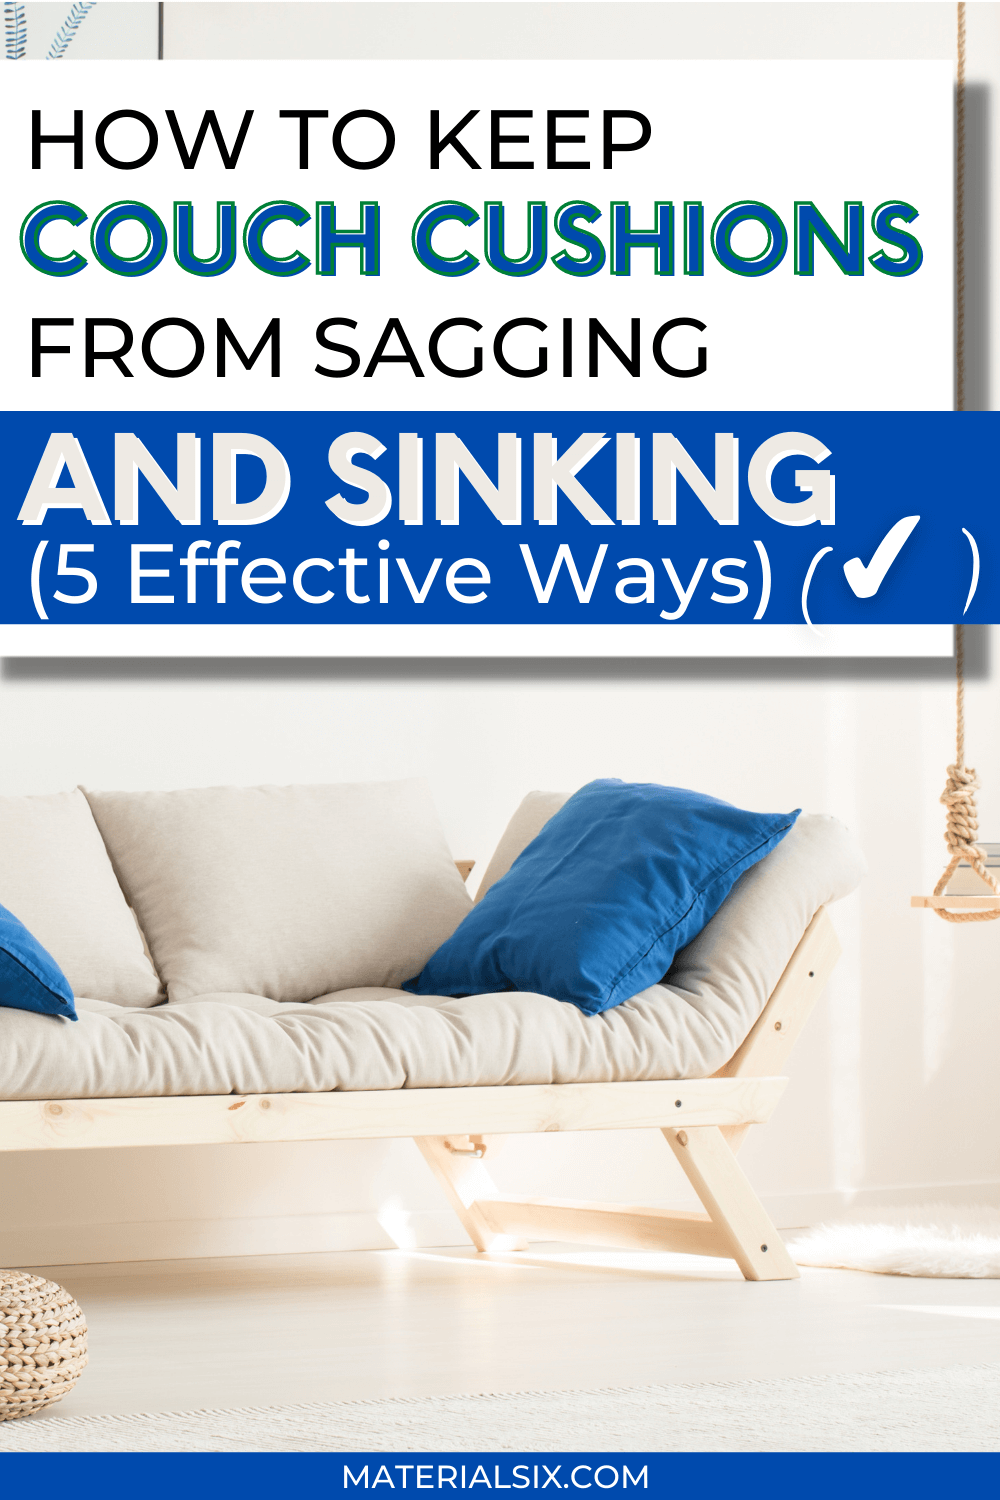 How to Keep Couch Cushions From Sagging & Sinking (5 Effective Ways) (4)